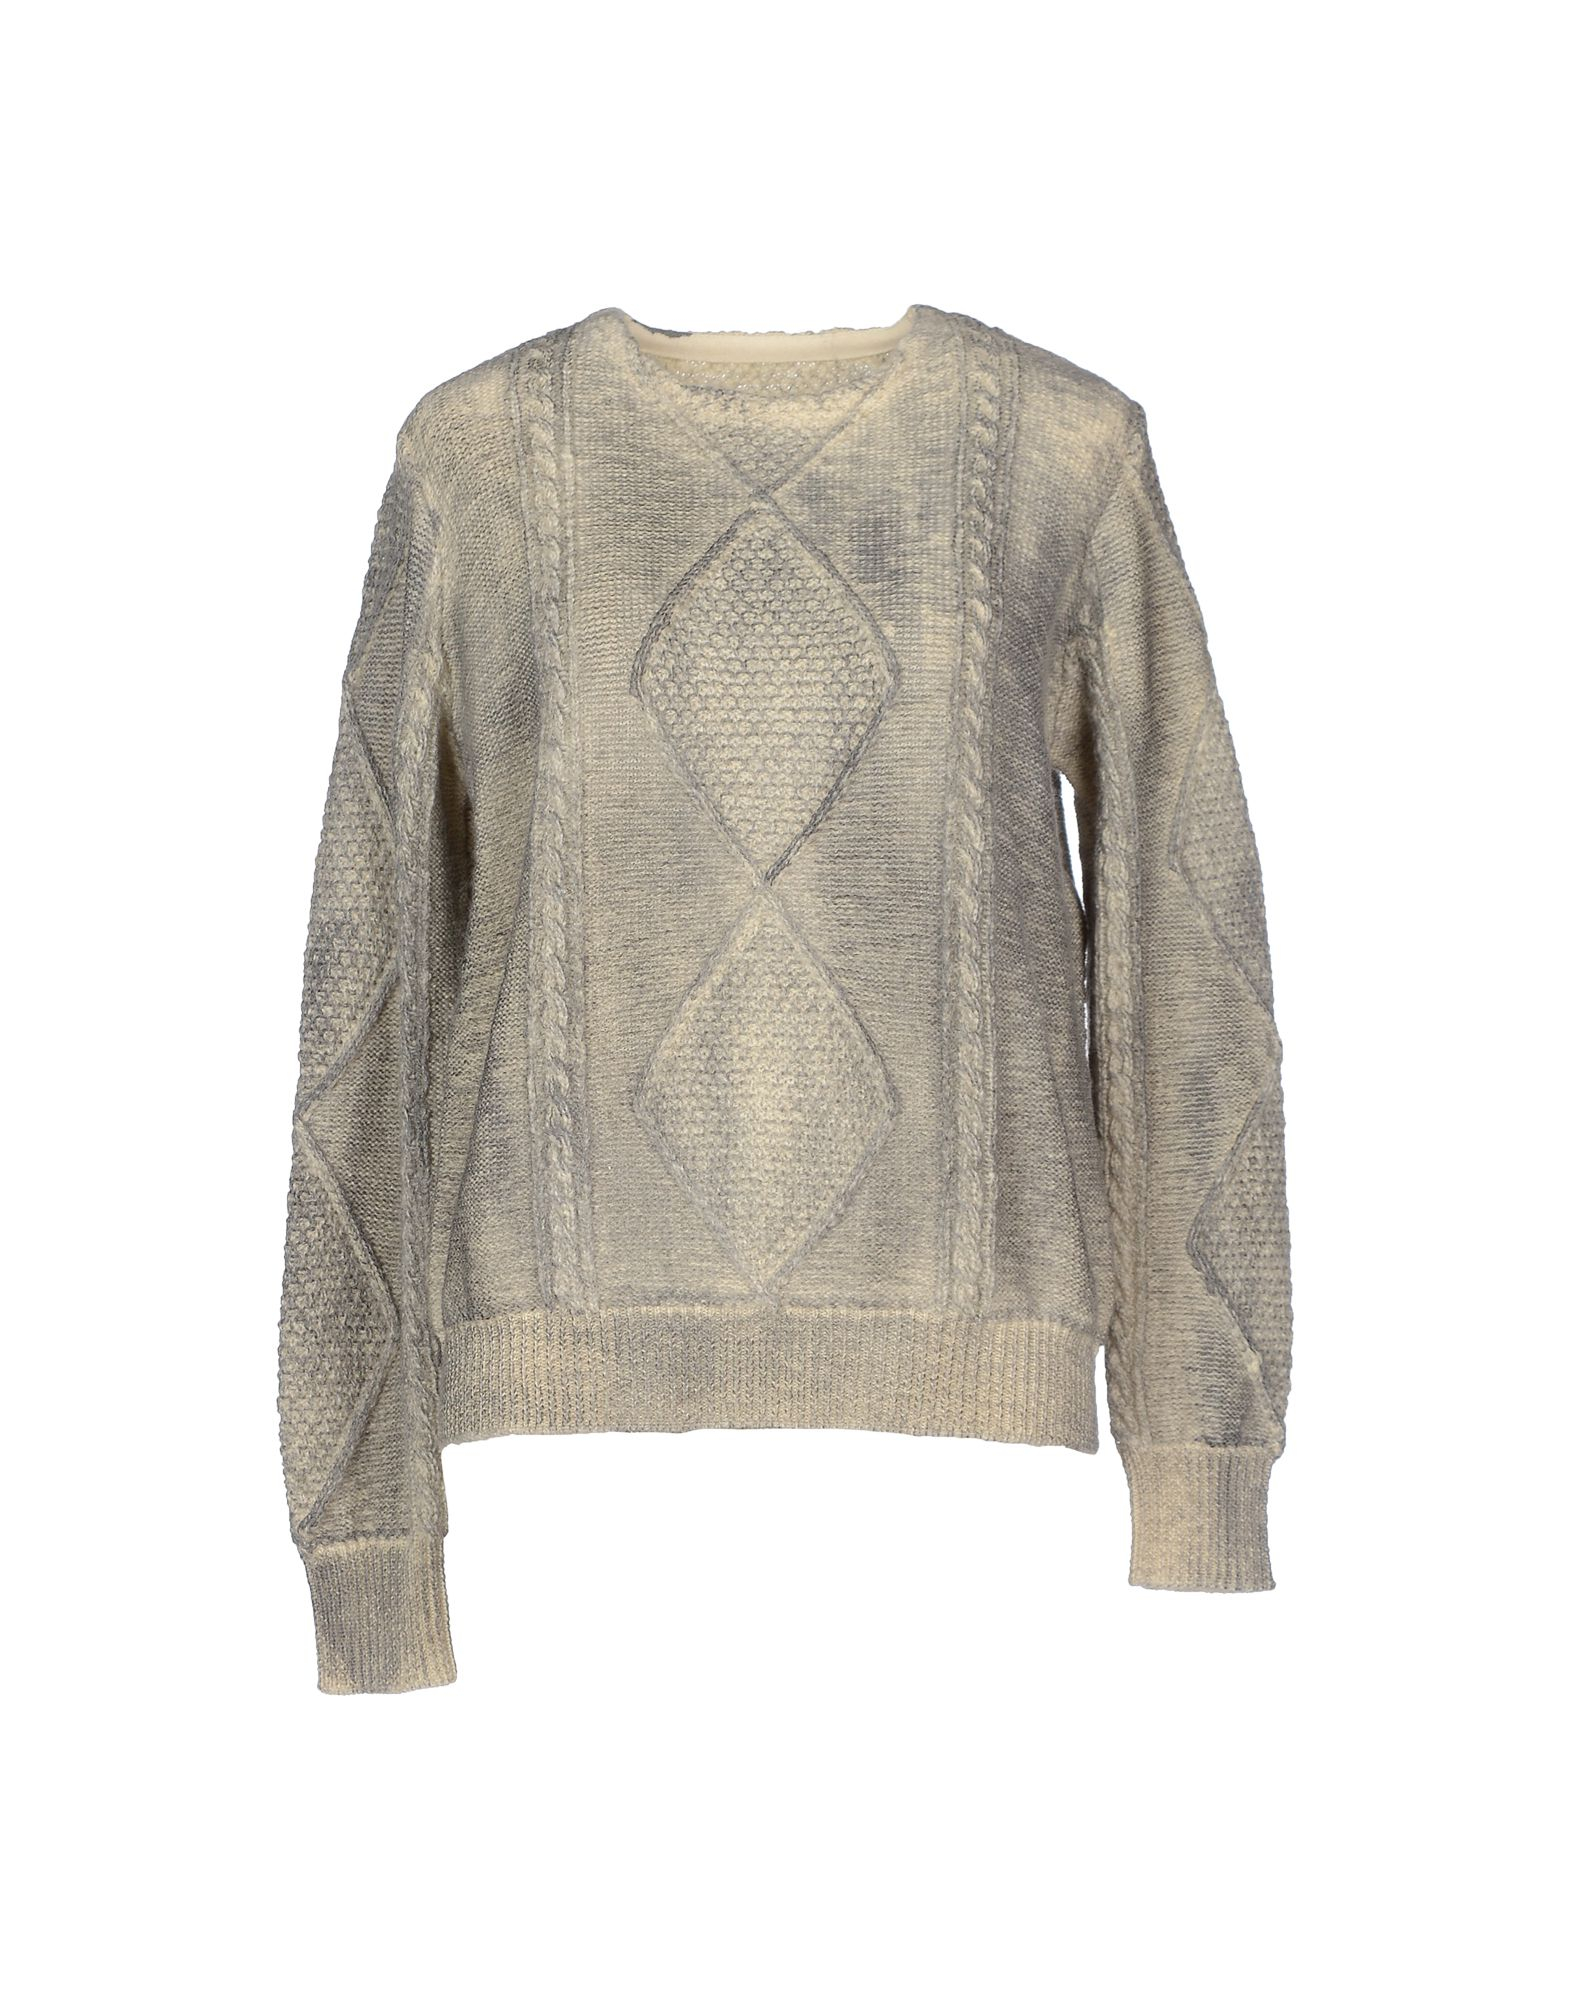 Lyst mm6 by maison martin margiela jumper in gray for Mm6 maison margiela